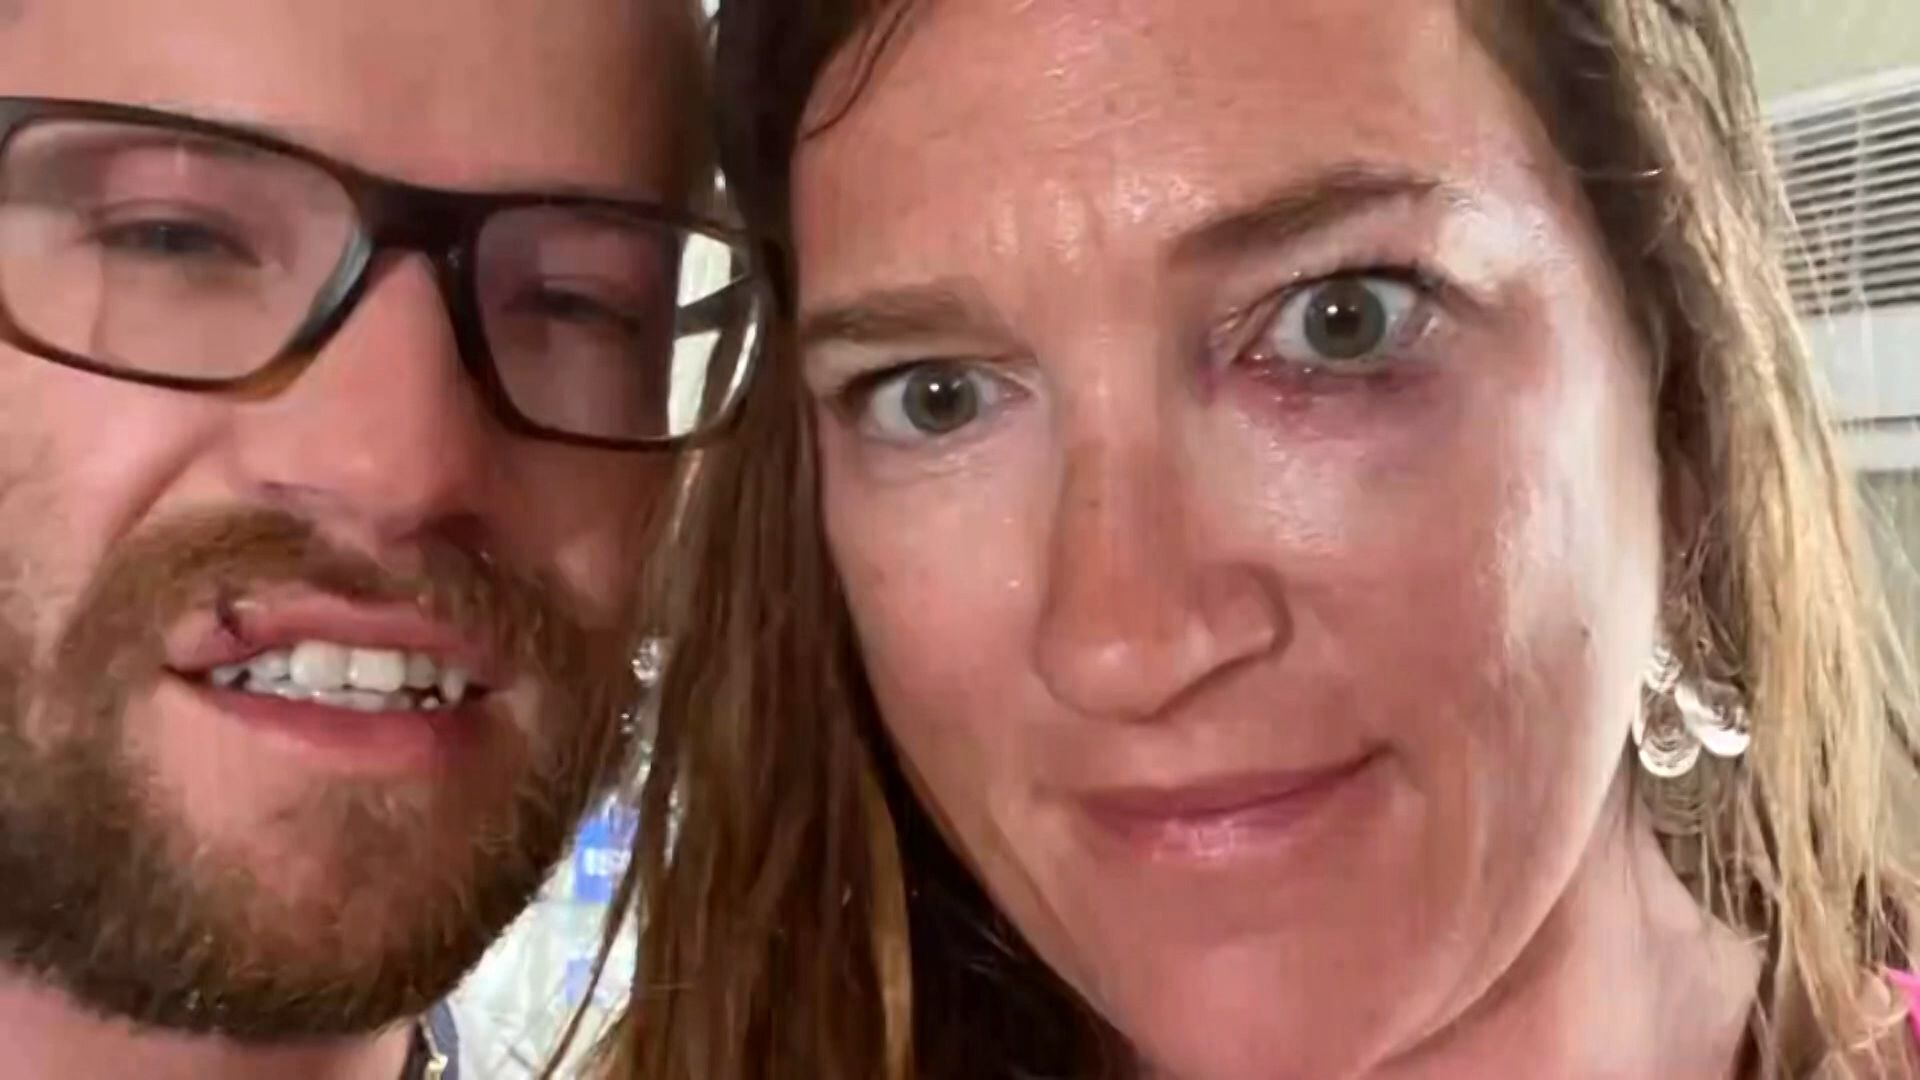 New Hampshire couple viciously beaten near bus stop while on Florida vacation